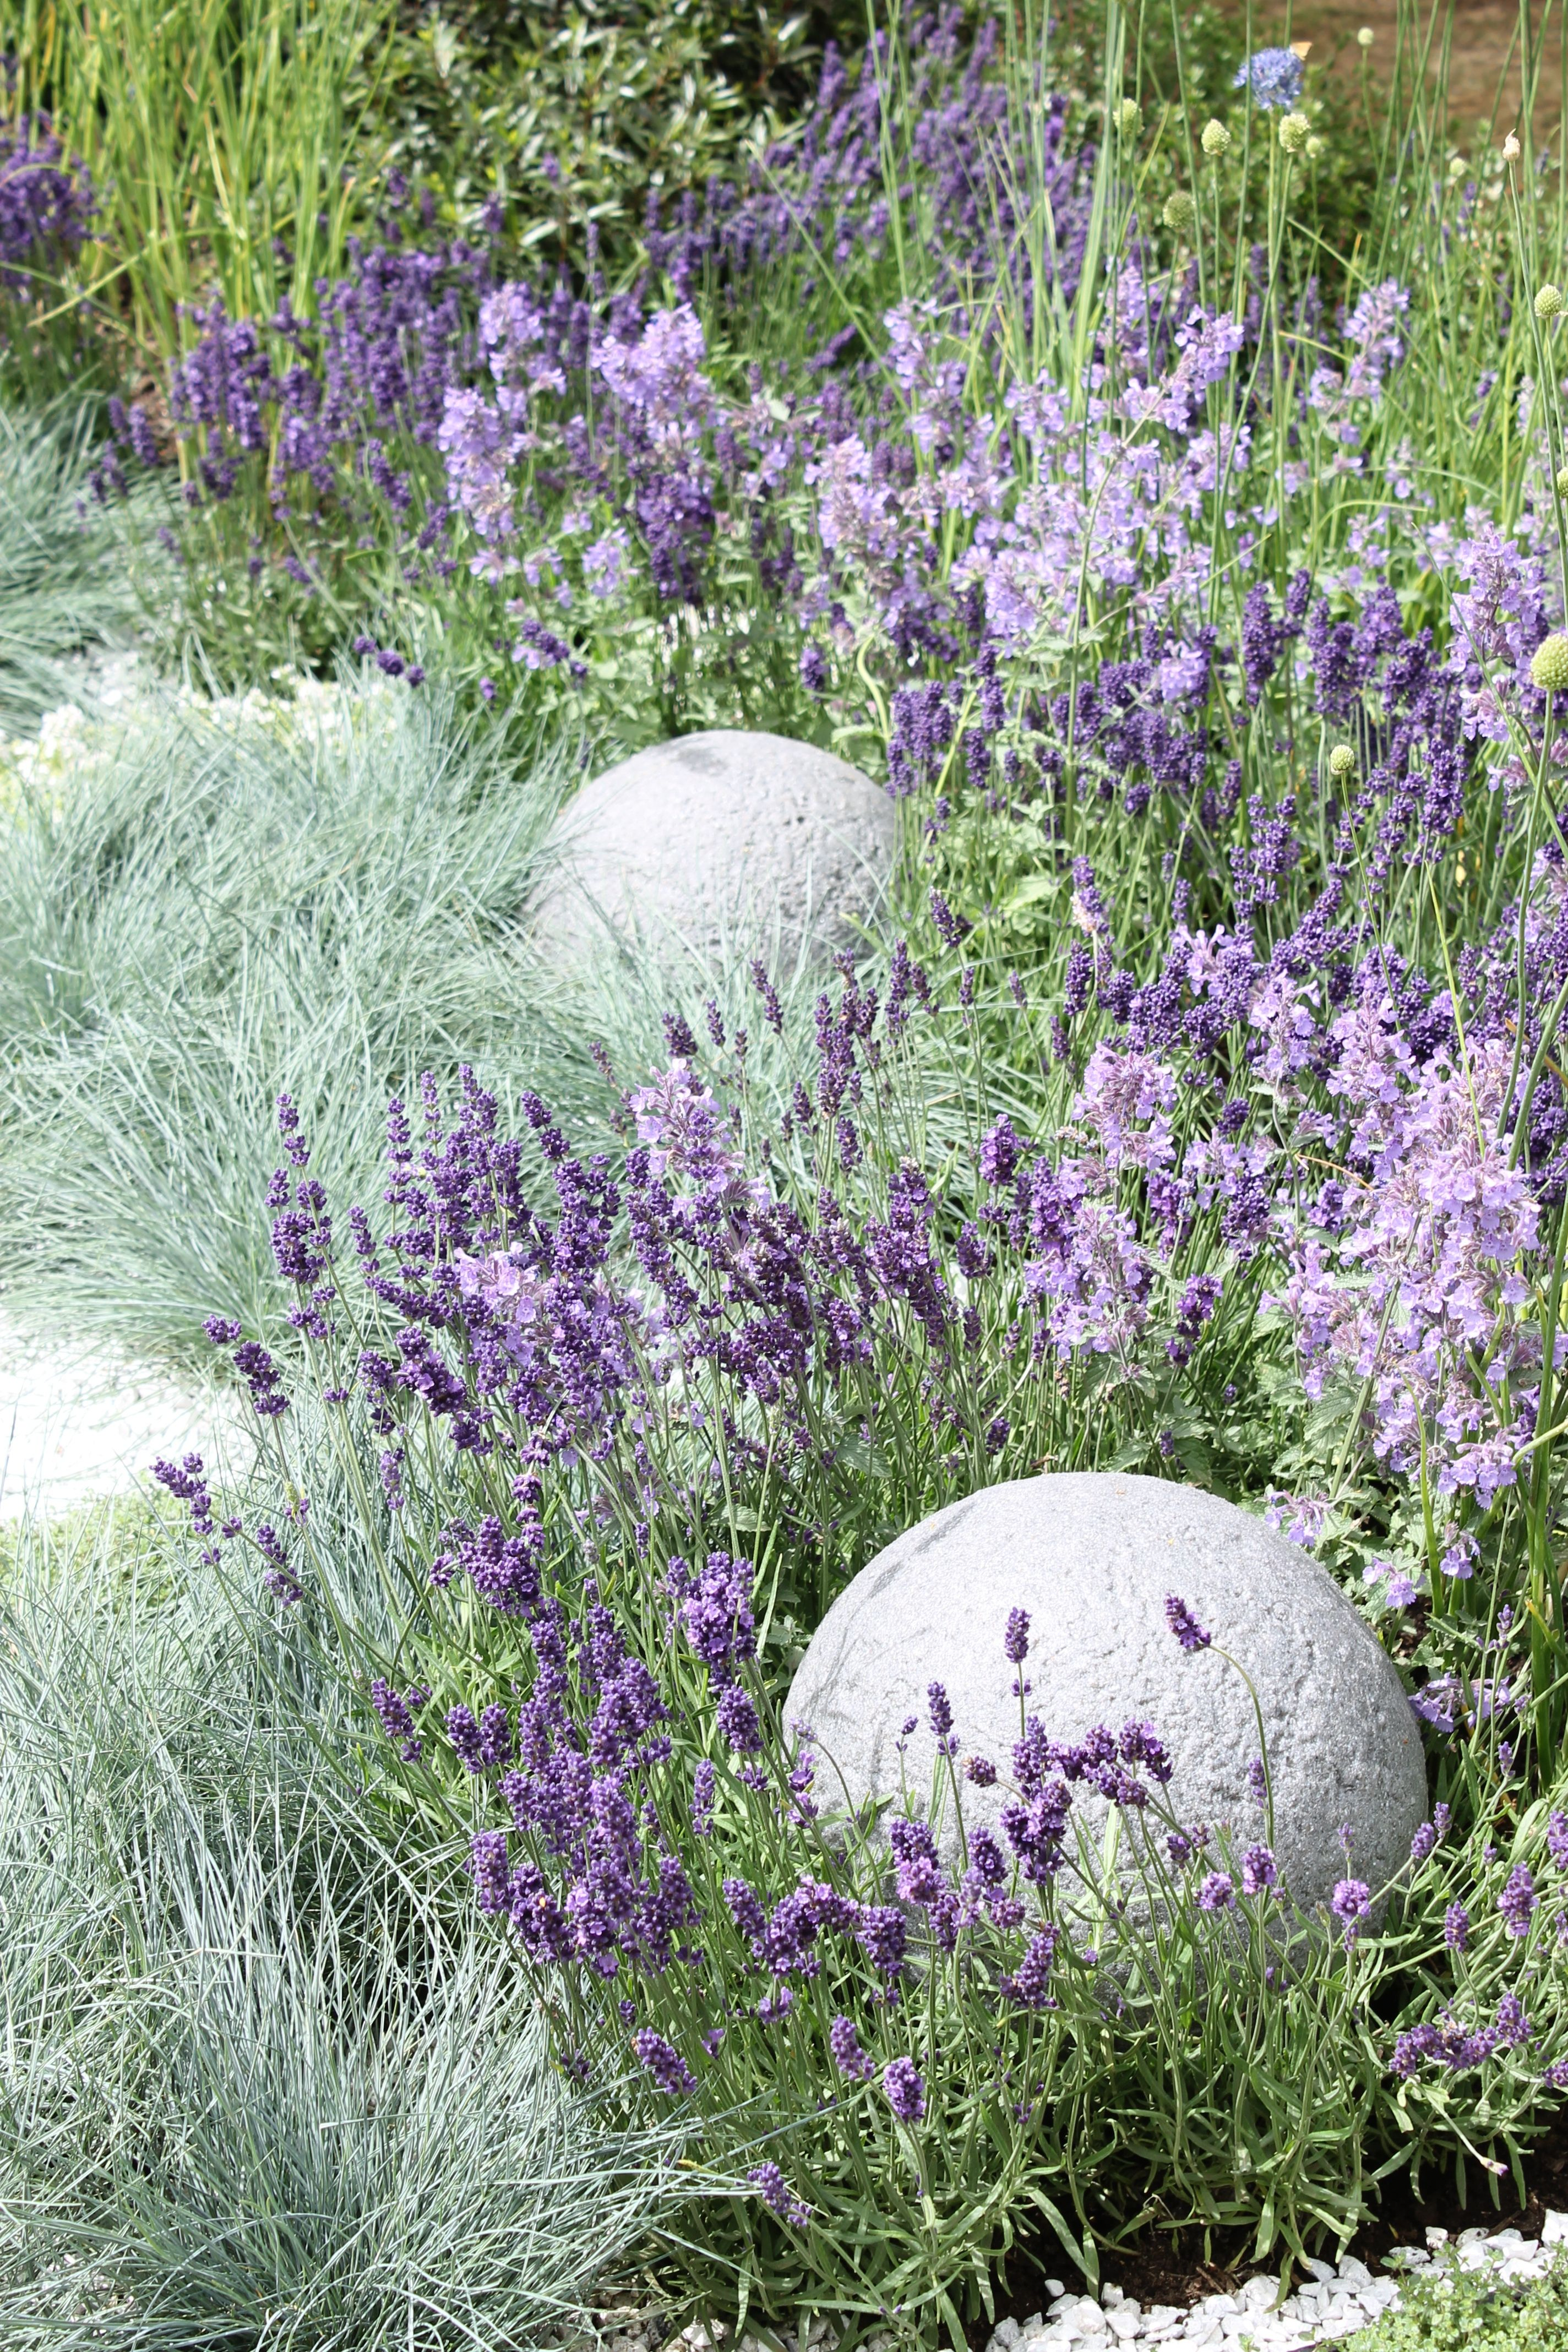 Lavender & Blue Fescue Grass. RHS Hampton Court Flower